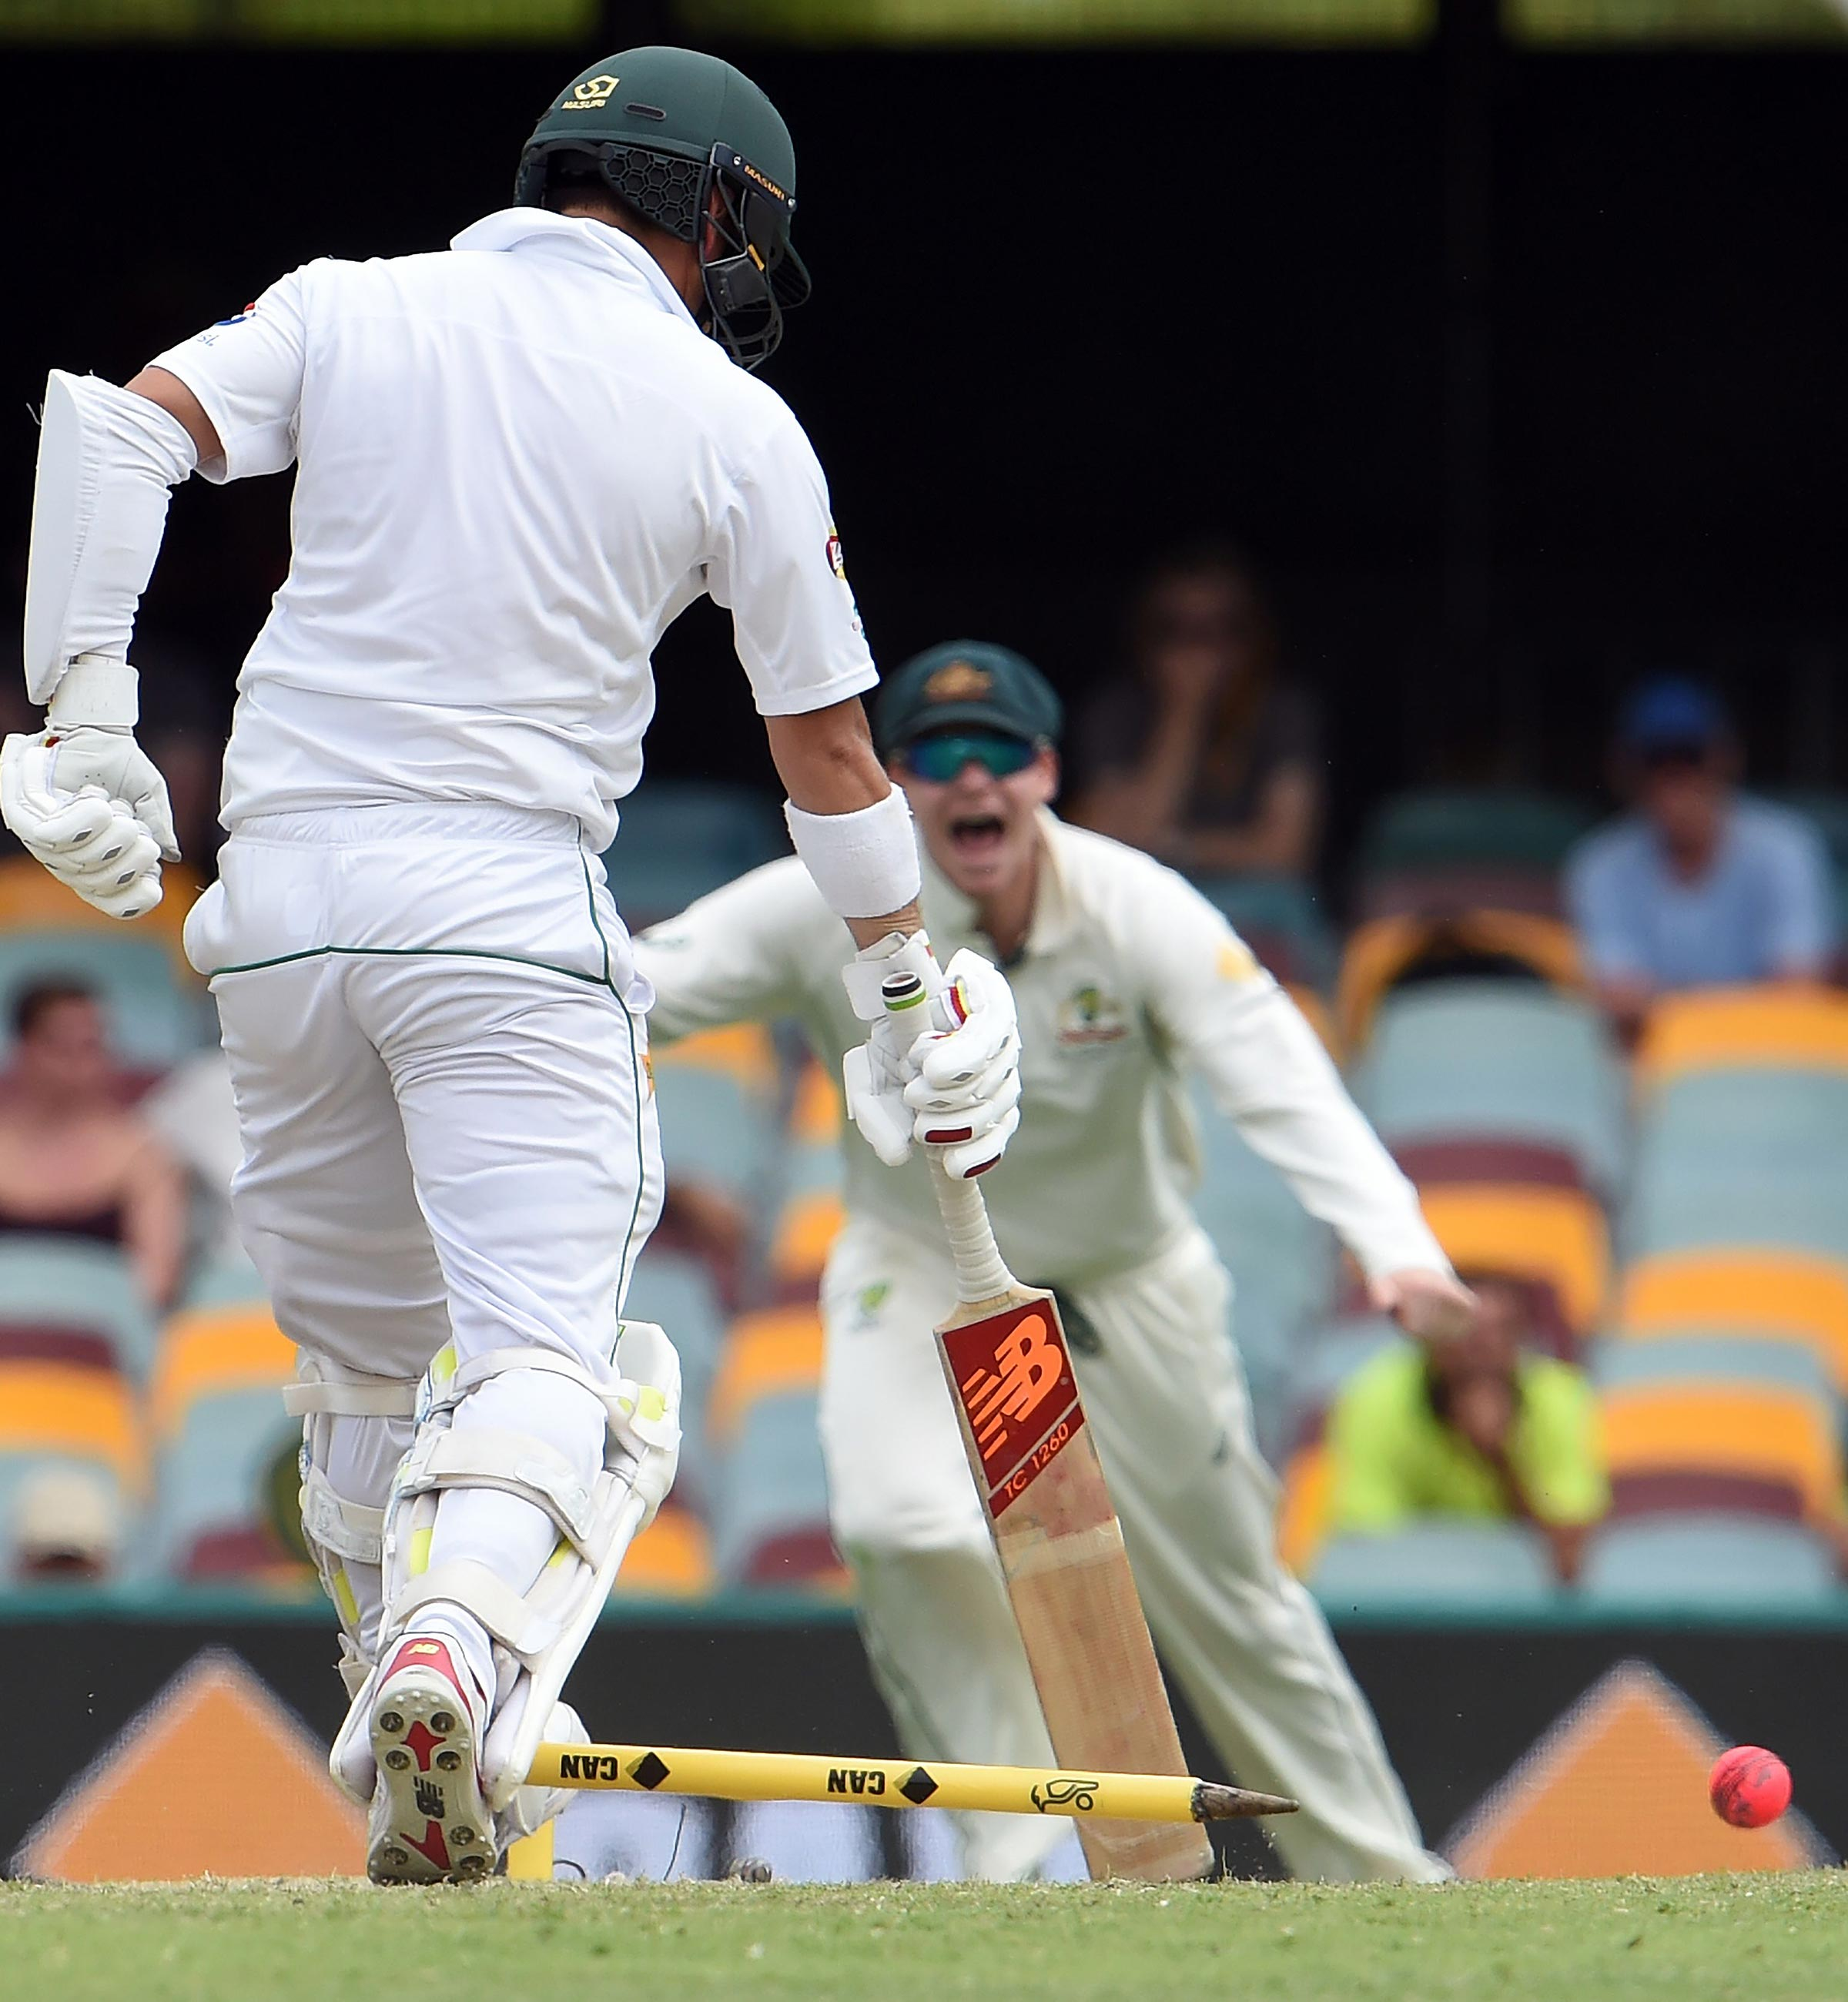 The moment Smith secured victory for Australia // Getty